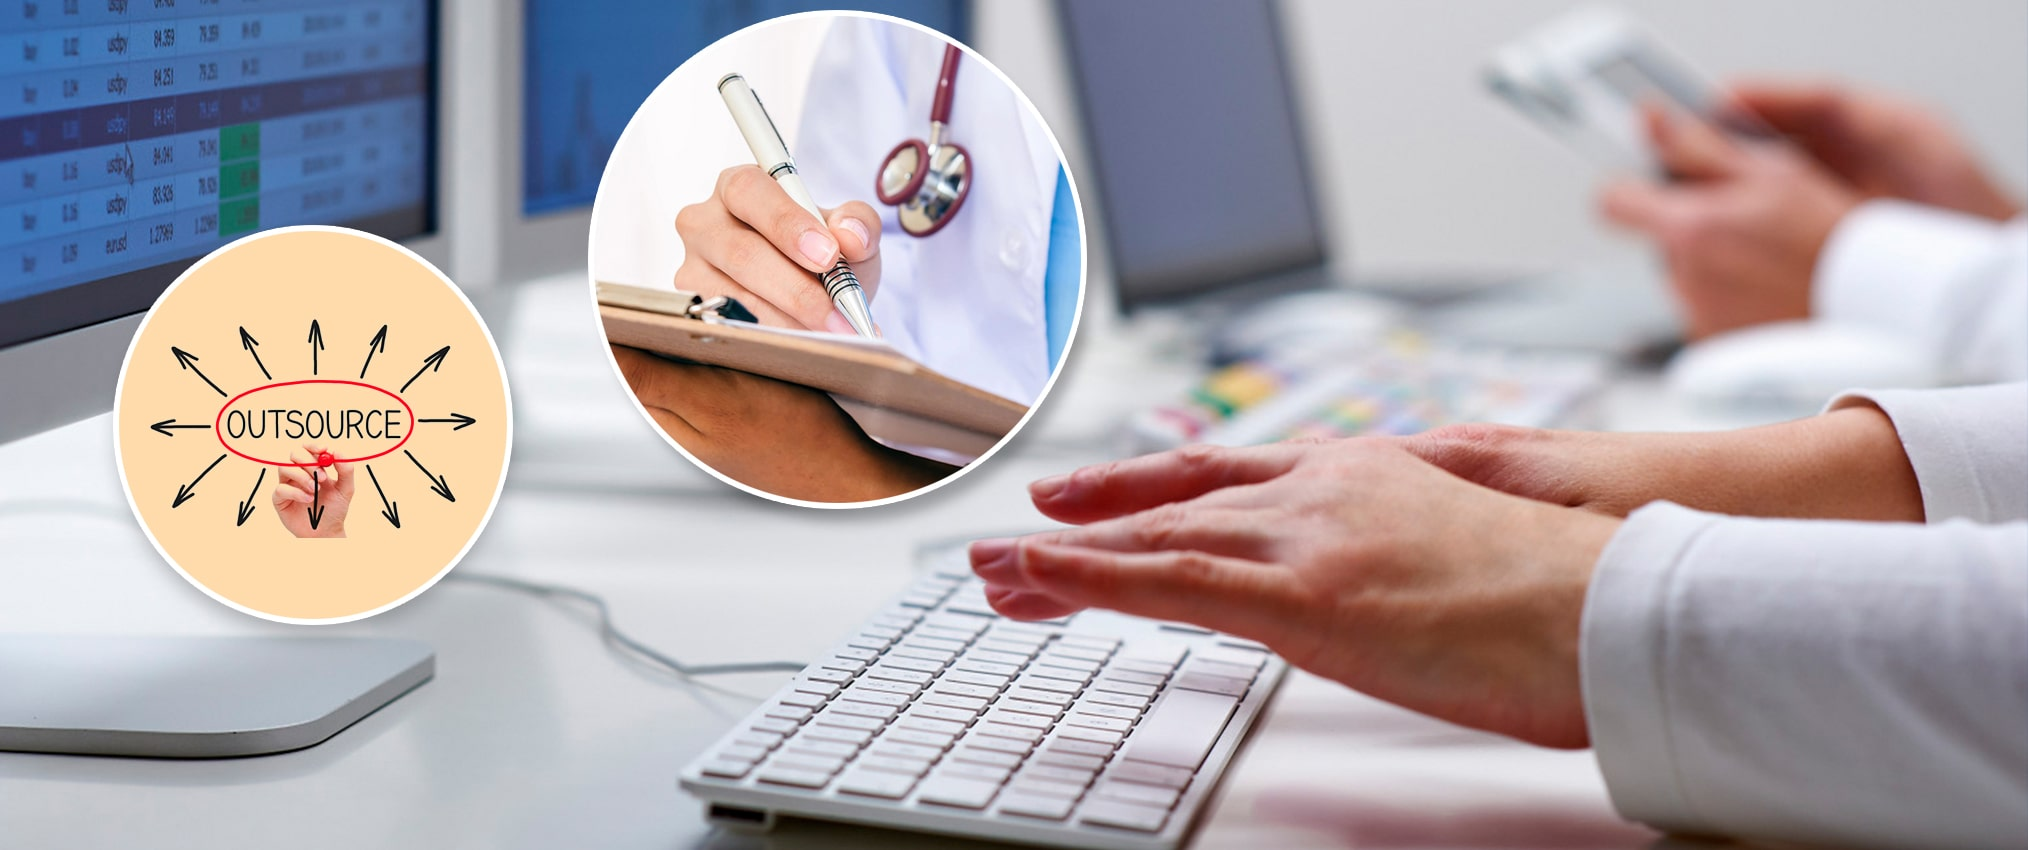 outsource-patient-record-form-processing-to-healthcare-bpos